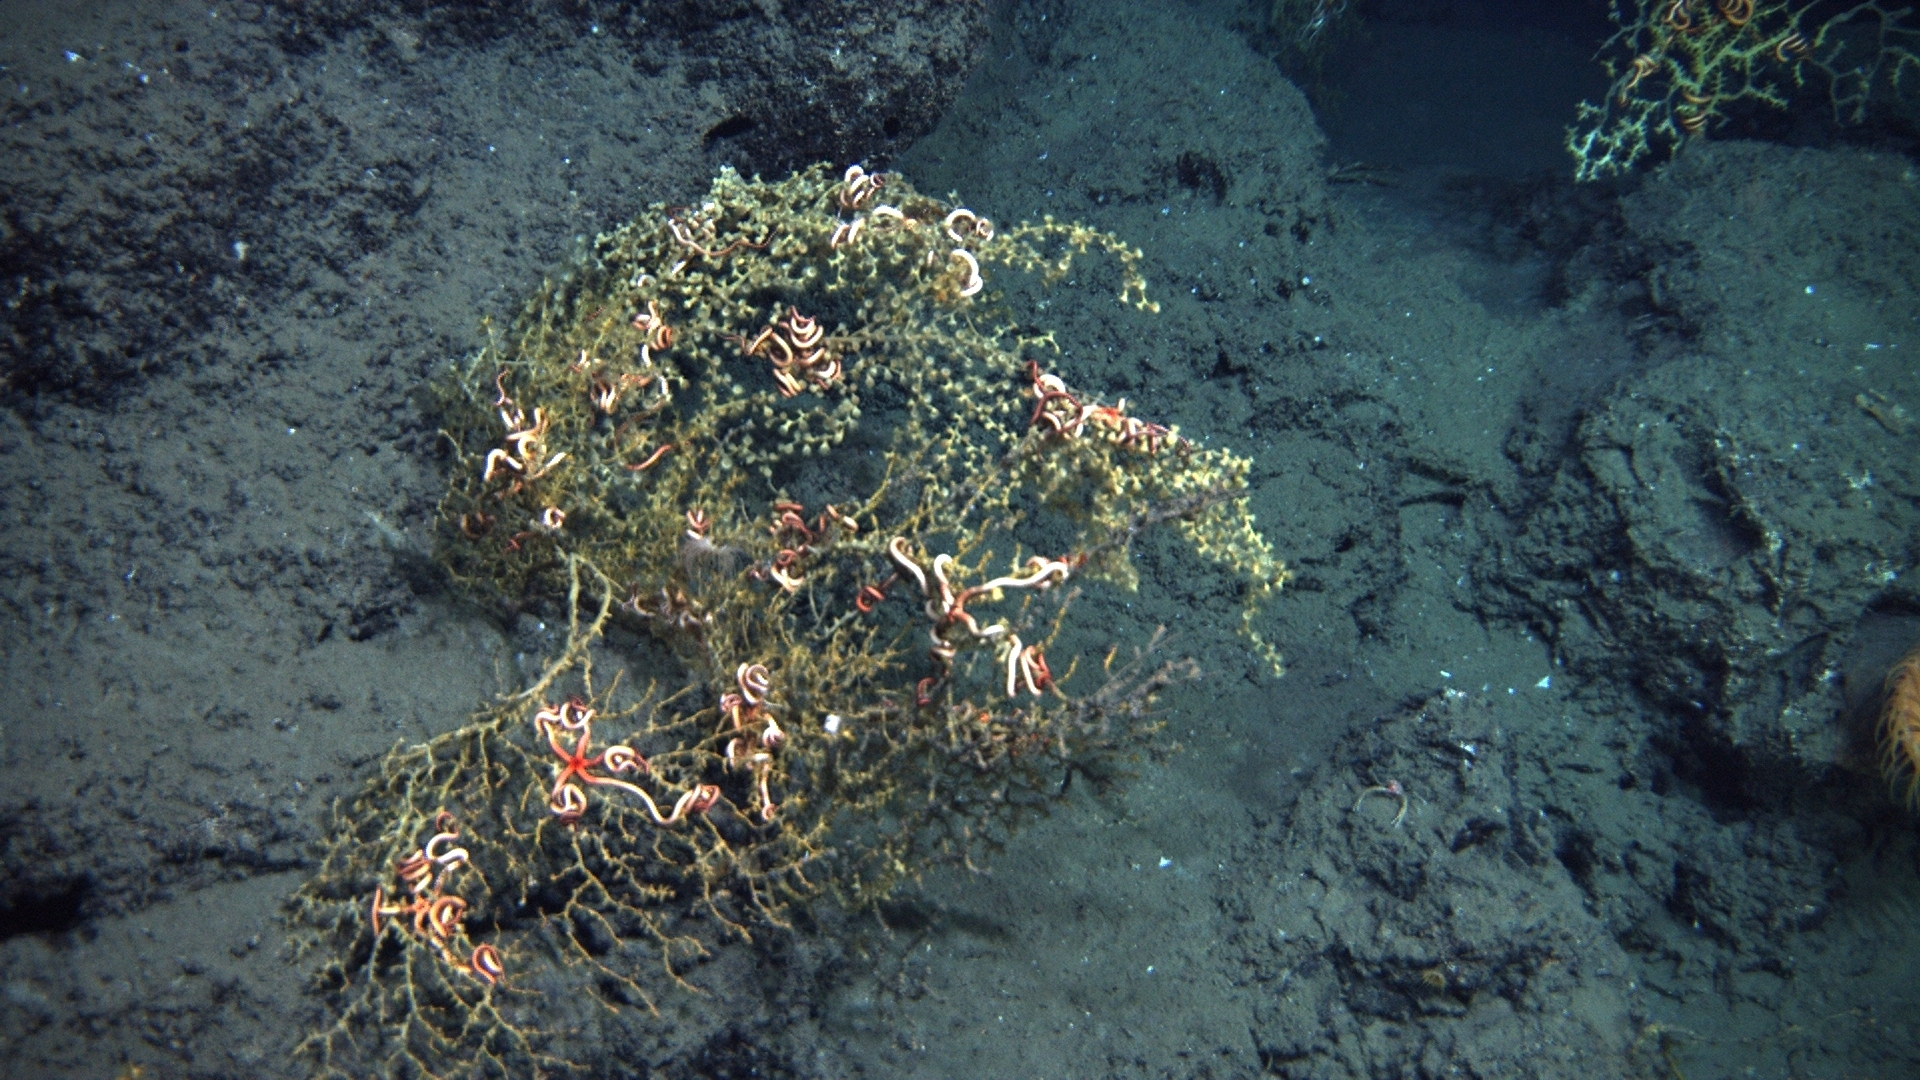 Photograph of deep-sea corals full of brittle stars, but surrounded by an area covered in floc from the Deepwater Horizon oil spill